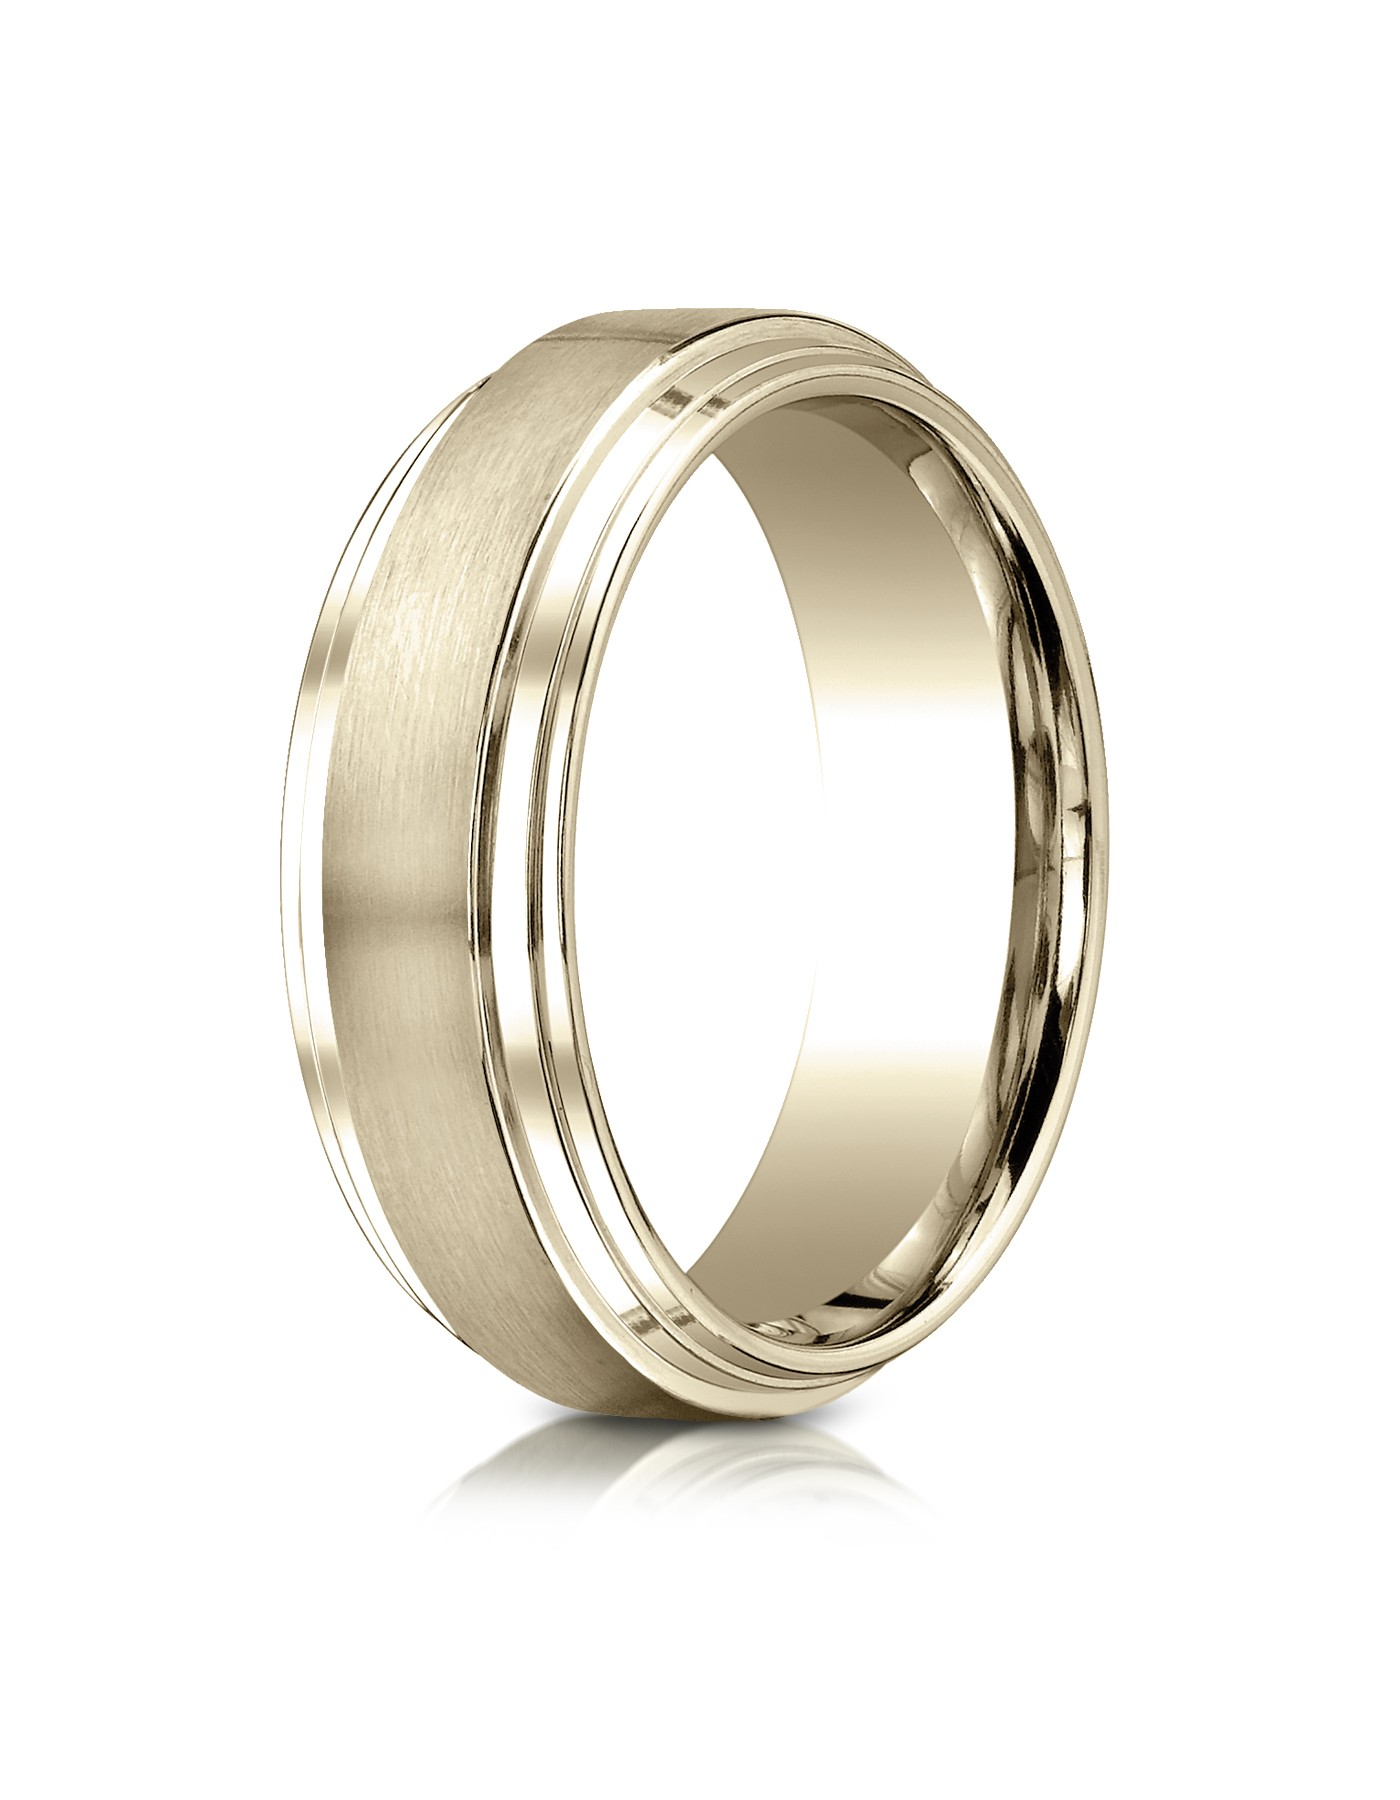 18k Yellow Gold 8mm Comfort-fit Satin-finished Step Edge Carved Design Band